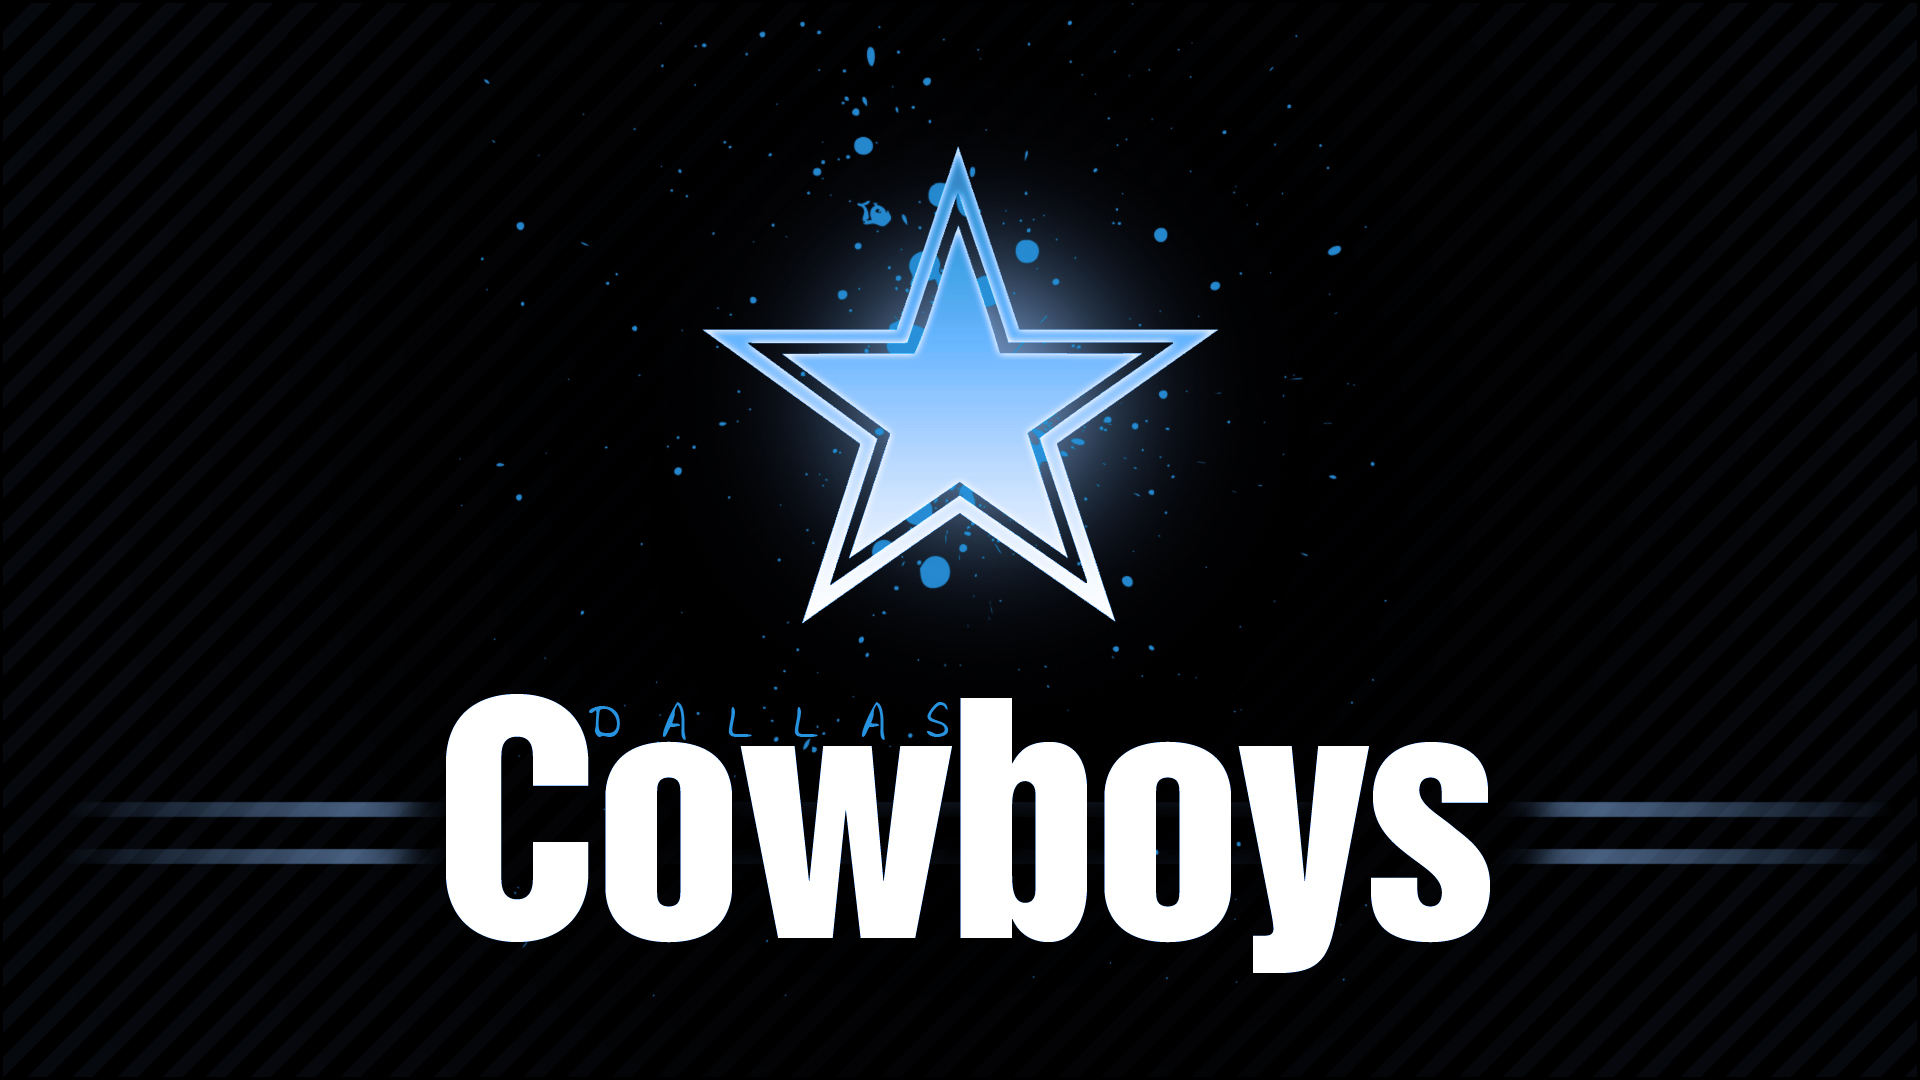 Wallpapers Of Dallas Cowboys Group  1920x1080